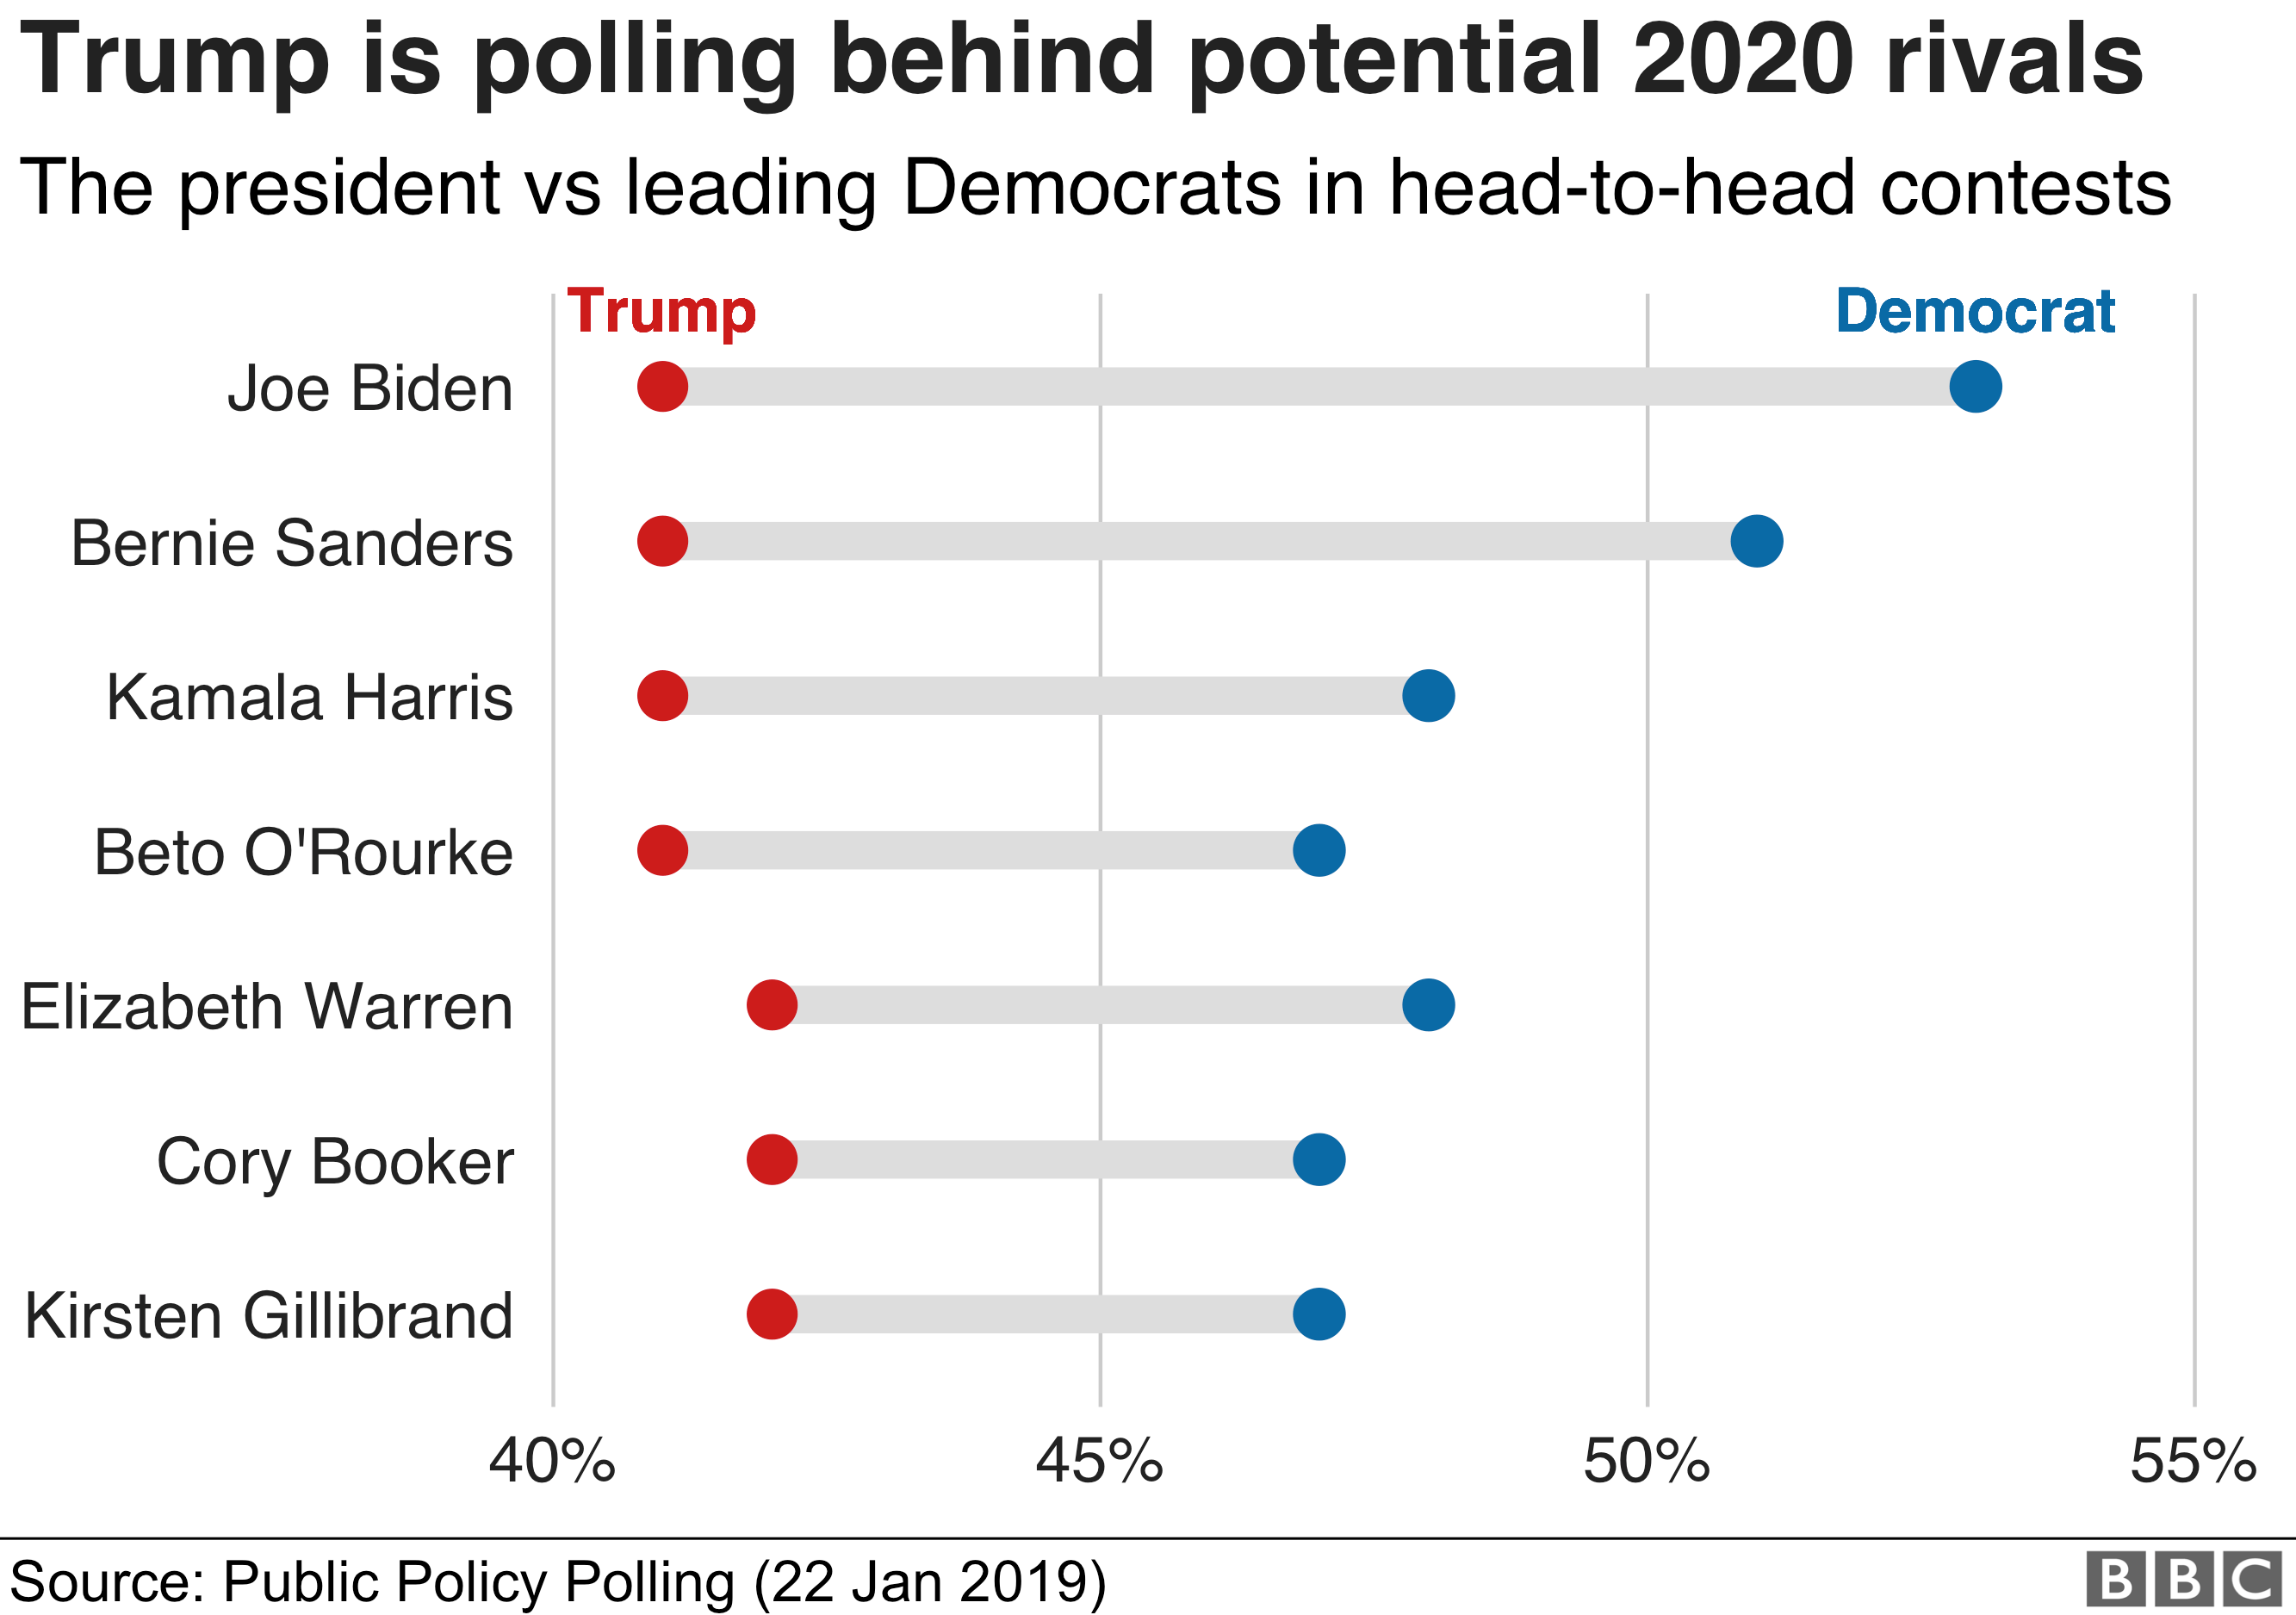 Chart showing how Donald Trump would fare against potential Democratic rivals in the 2020 election